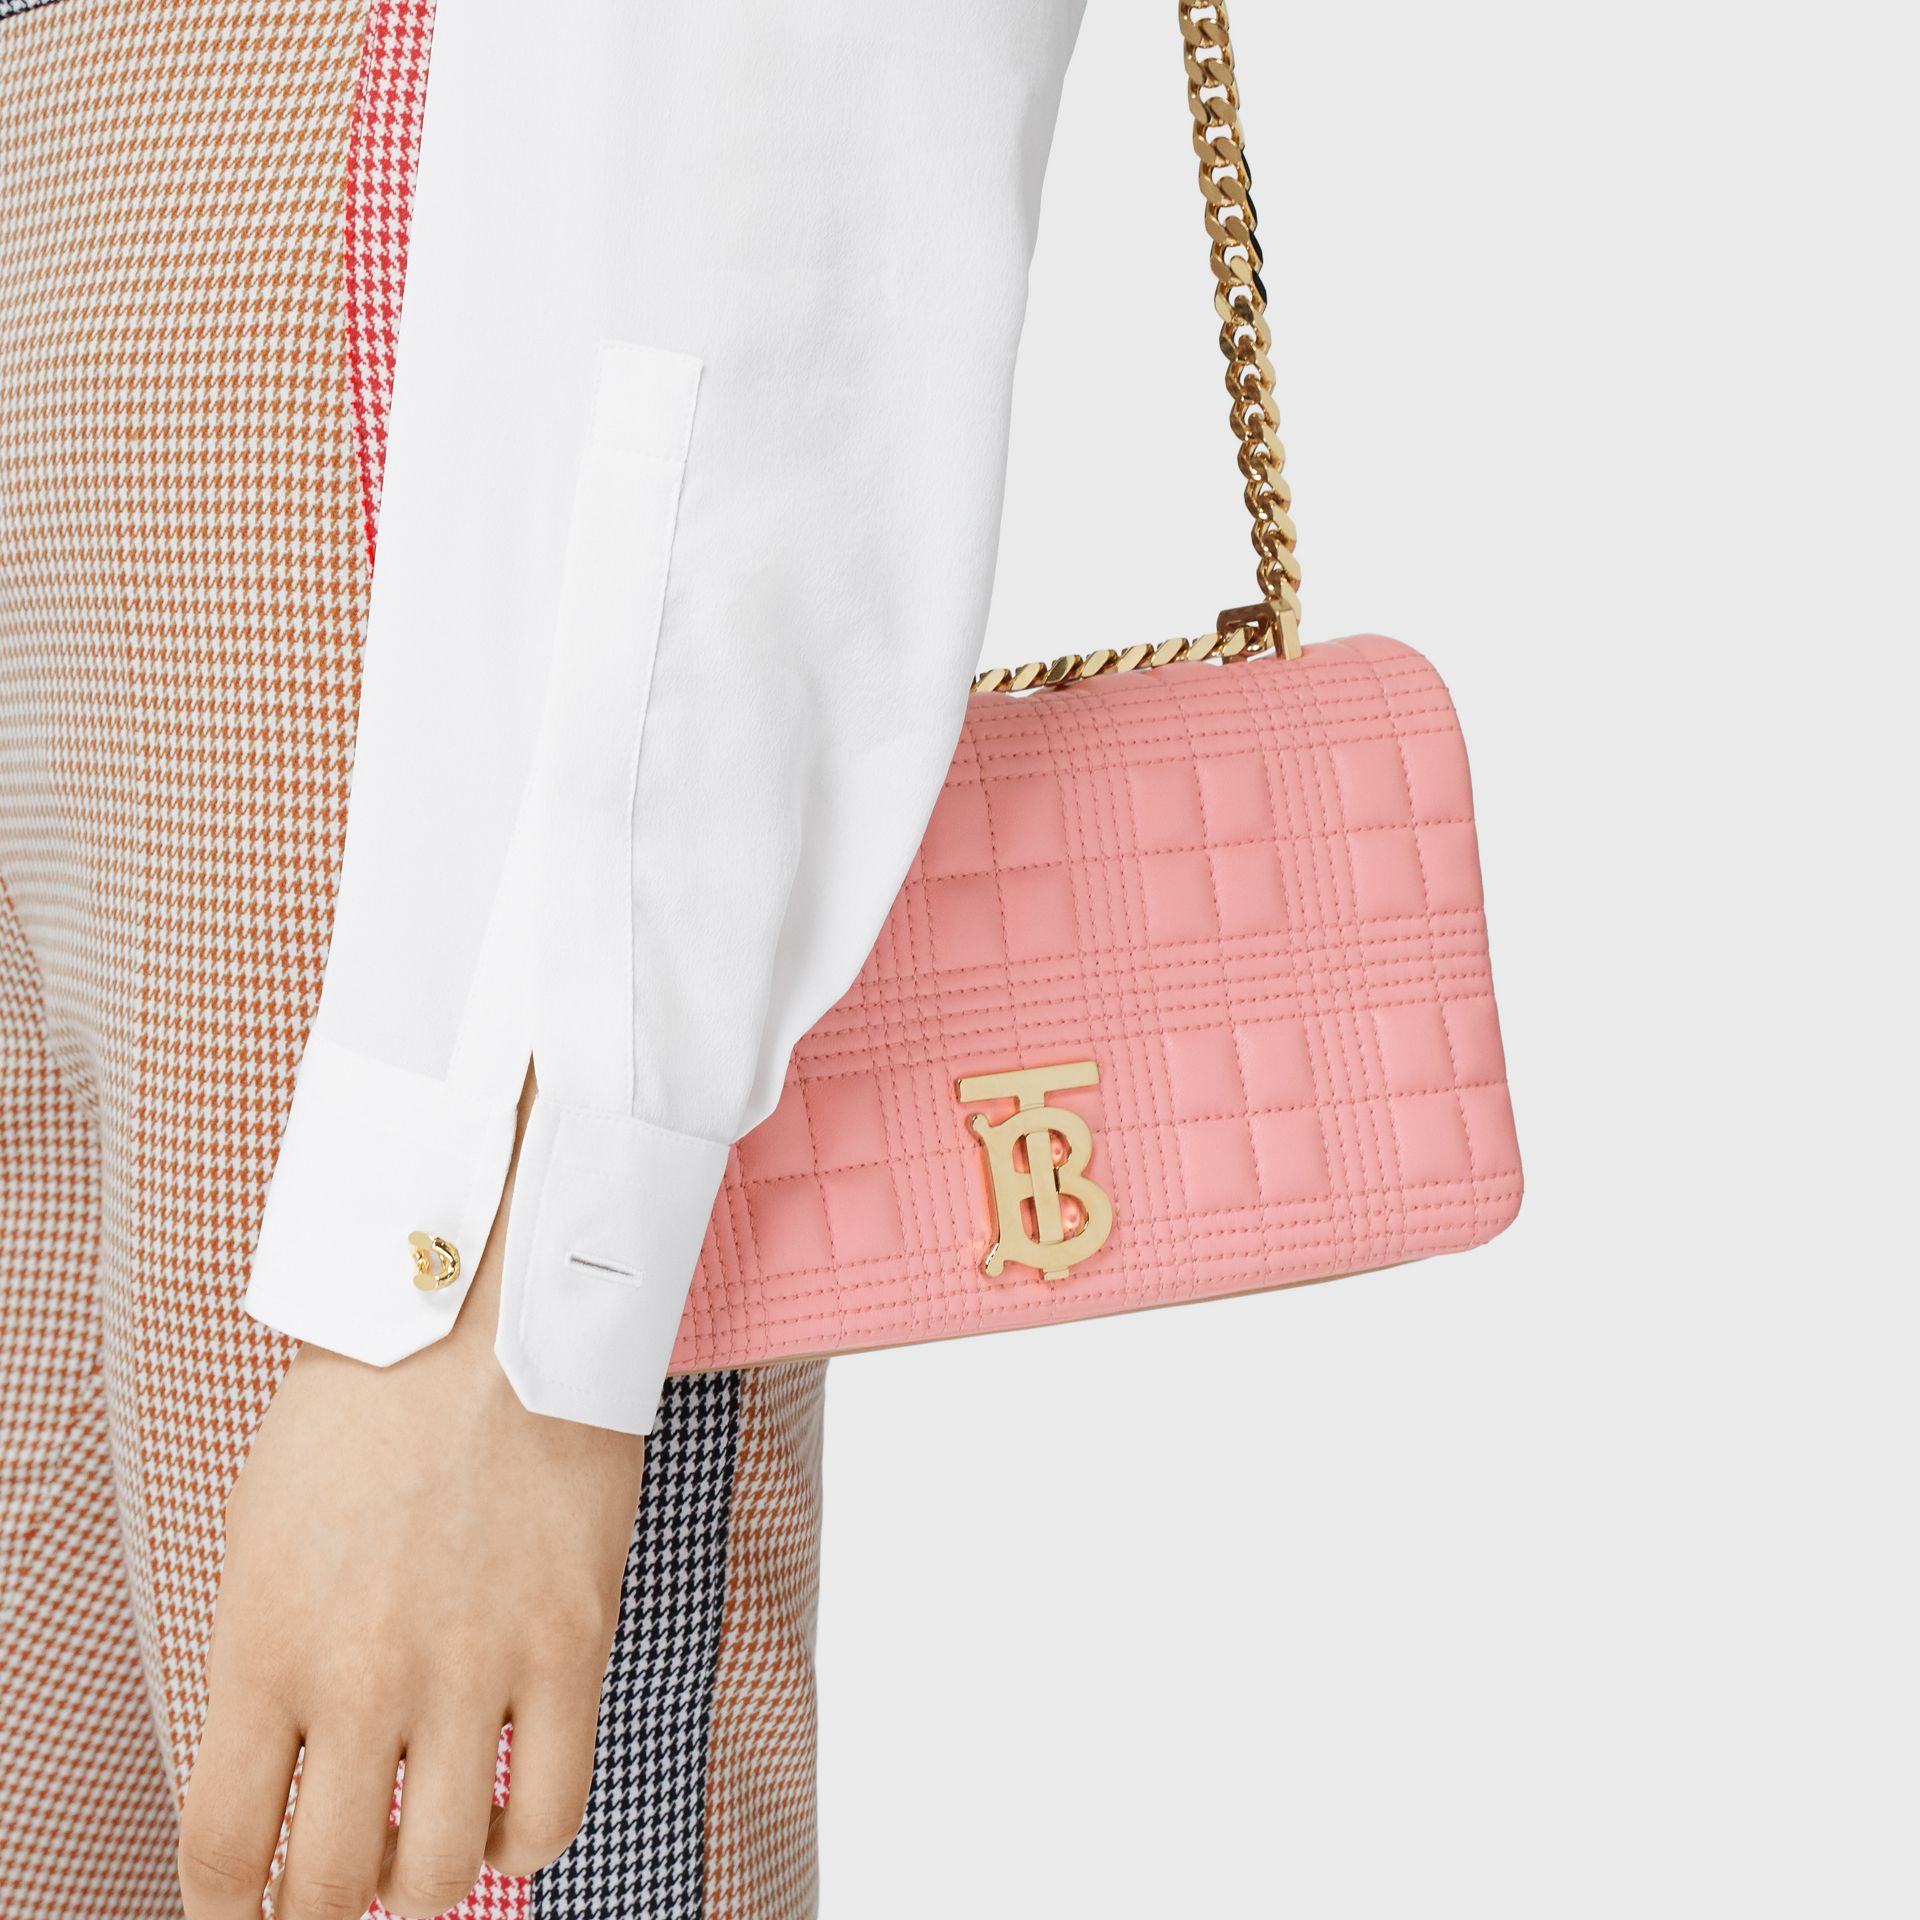 Small Quilted Two-tone Lambskin Lola Bag in Peony/camel - Women | Burberry United Kingdom - gallery image 2